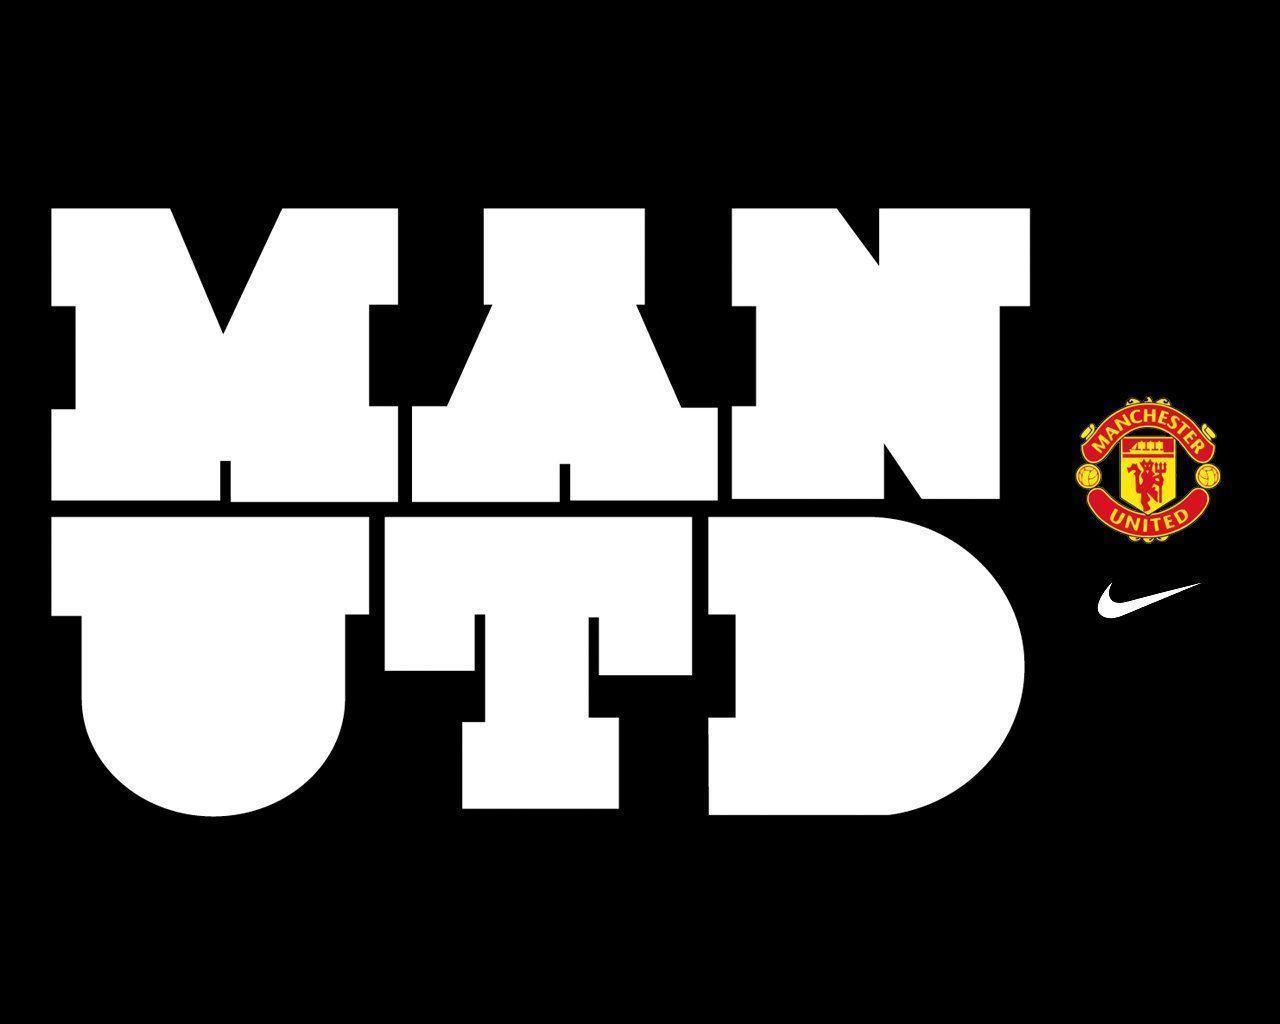 Black White HD Manchester United Logo Wallpape • SongiadaPro